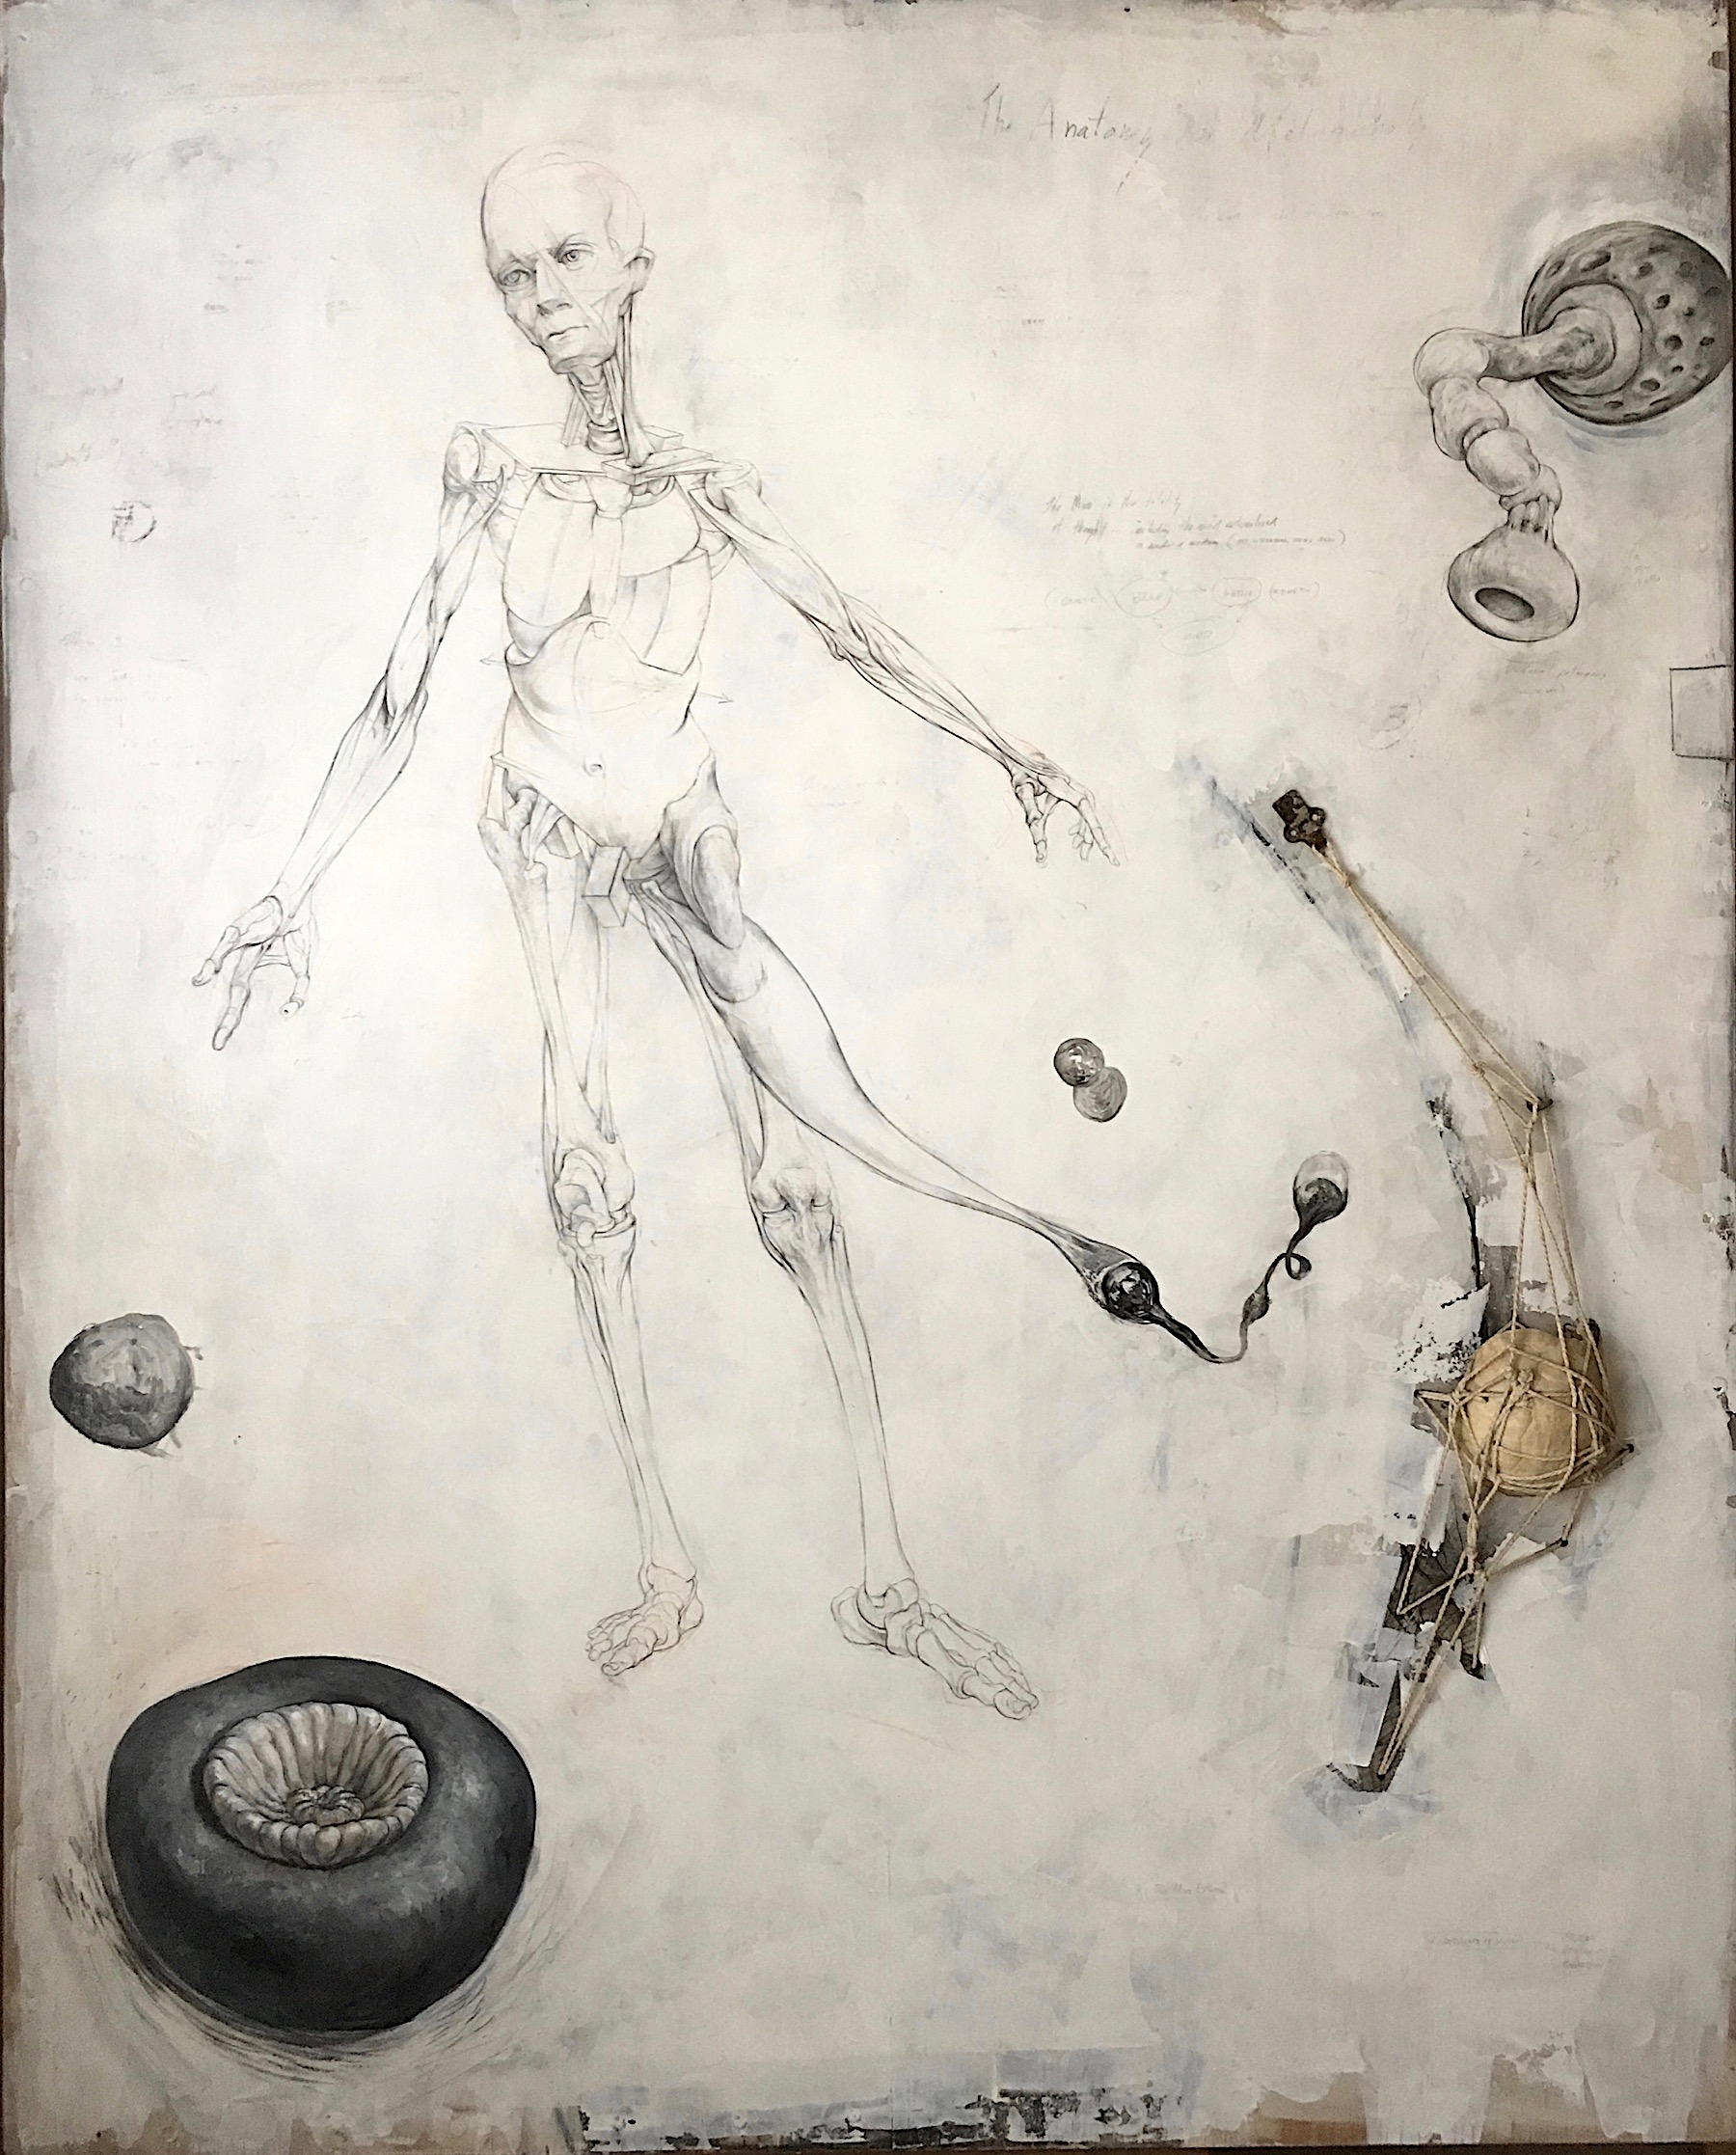 """Heroic Figure with Pathogens and Allies, 1997-2018, graphite, acrylic, string, hardware, carapace on panel, 59 3/4 x 48 x 2 3/8"""""""